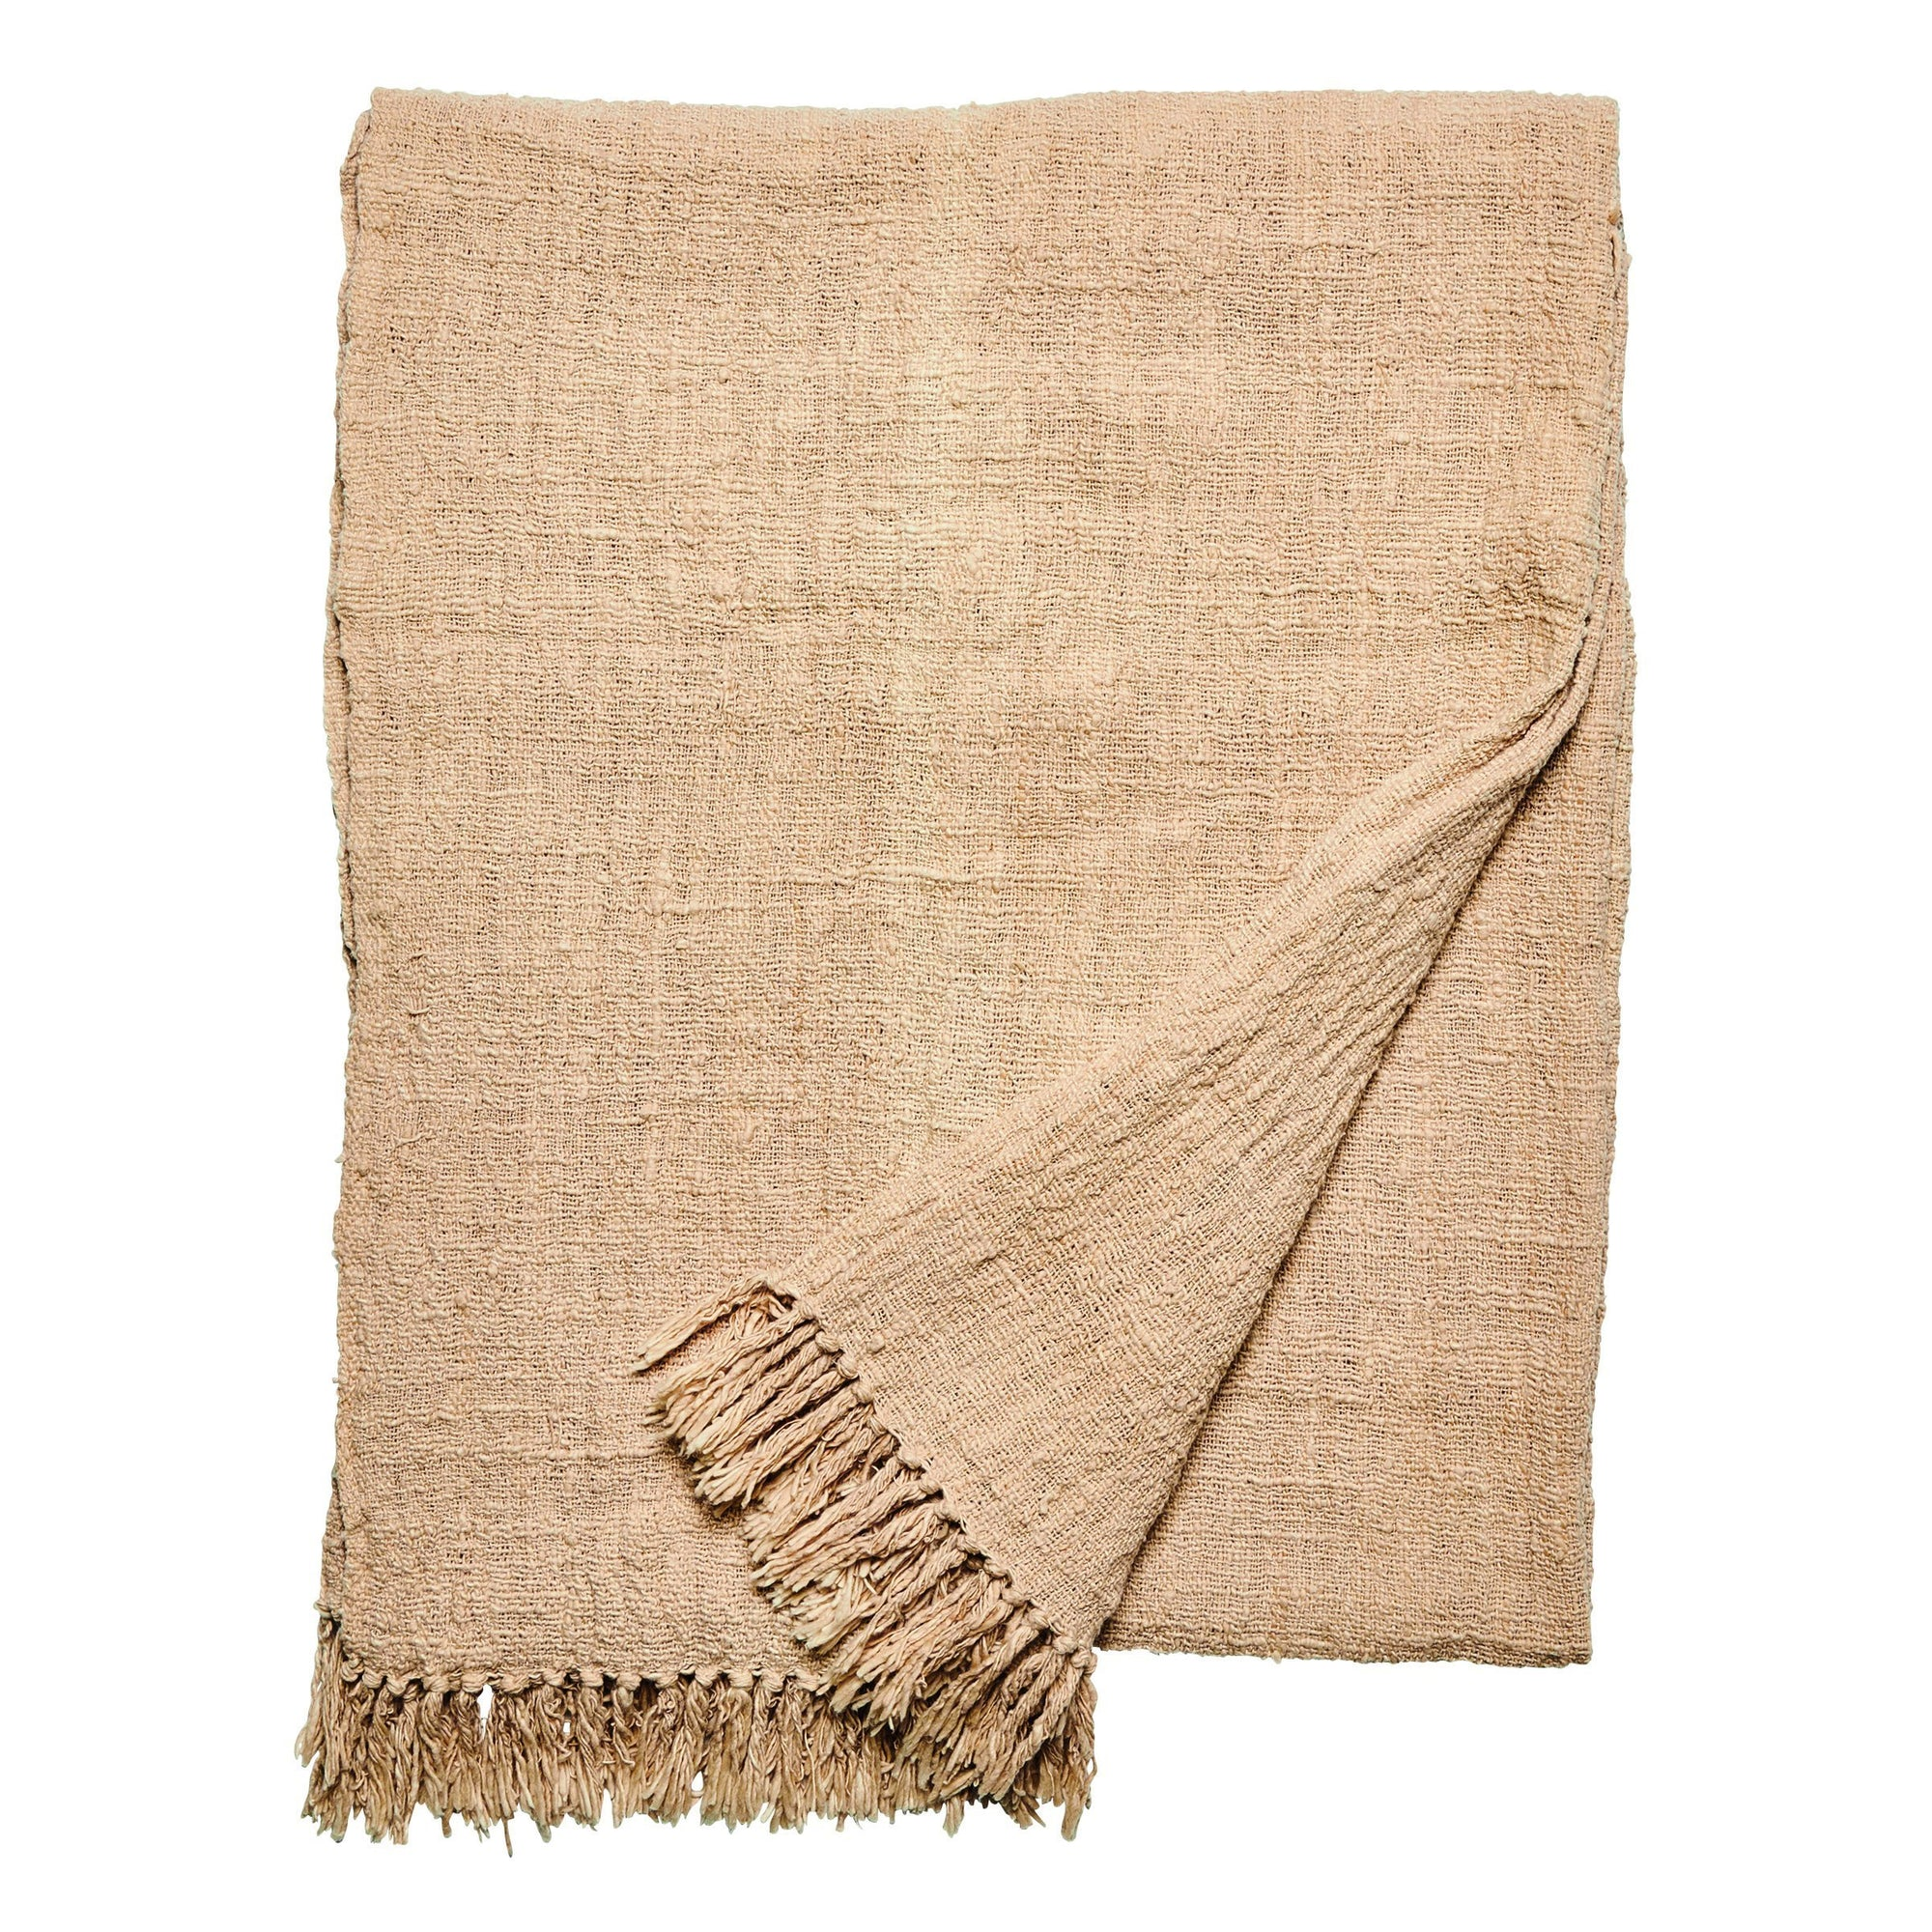 Plant dyed cotton throw (BSH1090)